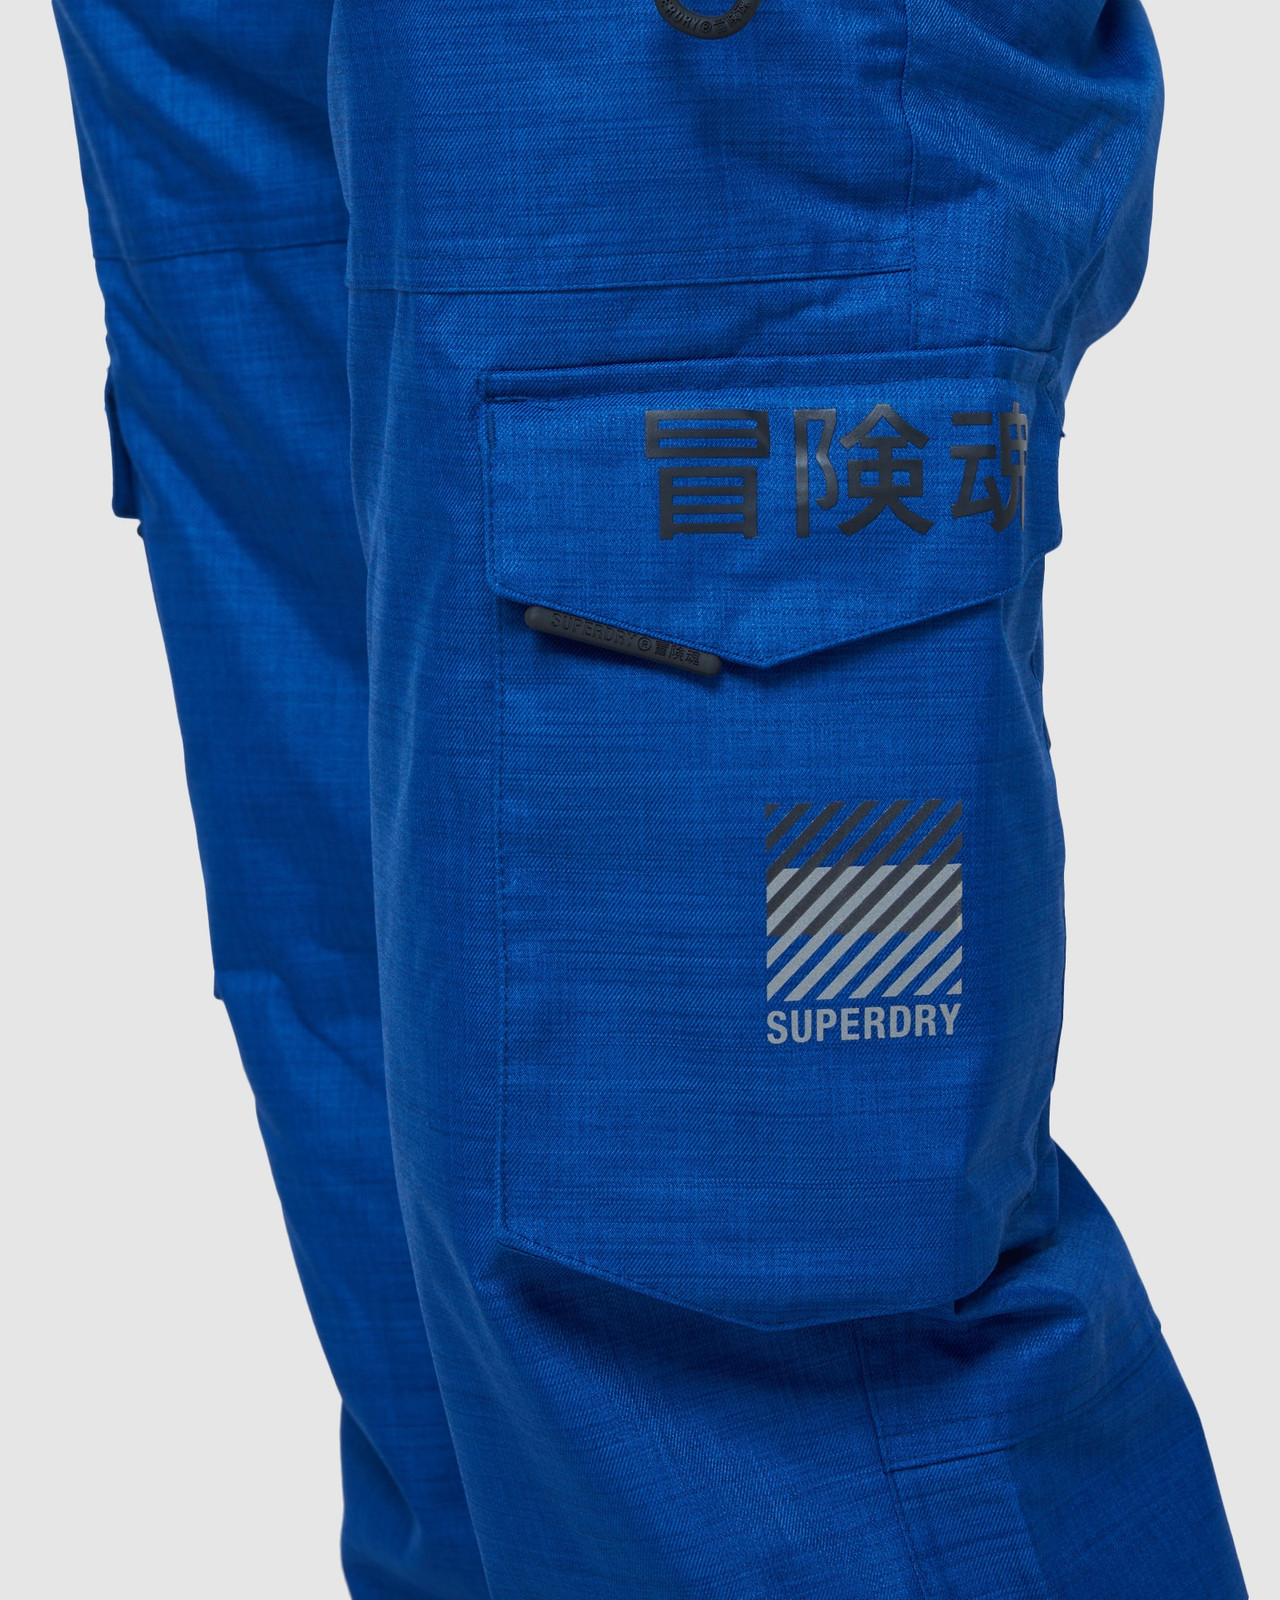 Superdry Mens ULTIMATE SNOW RESCUE PANT Blue Green Snow Pants 5